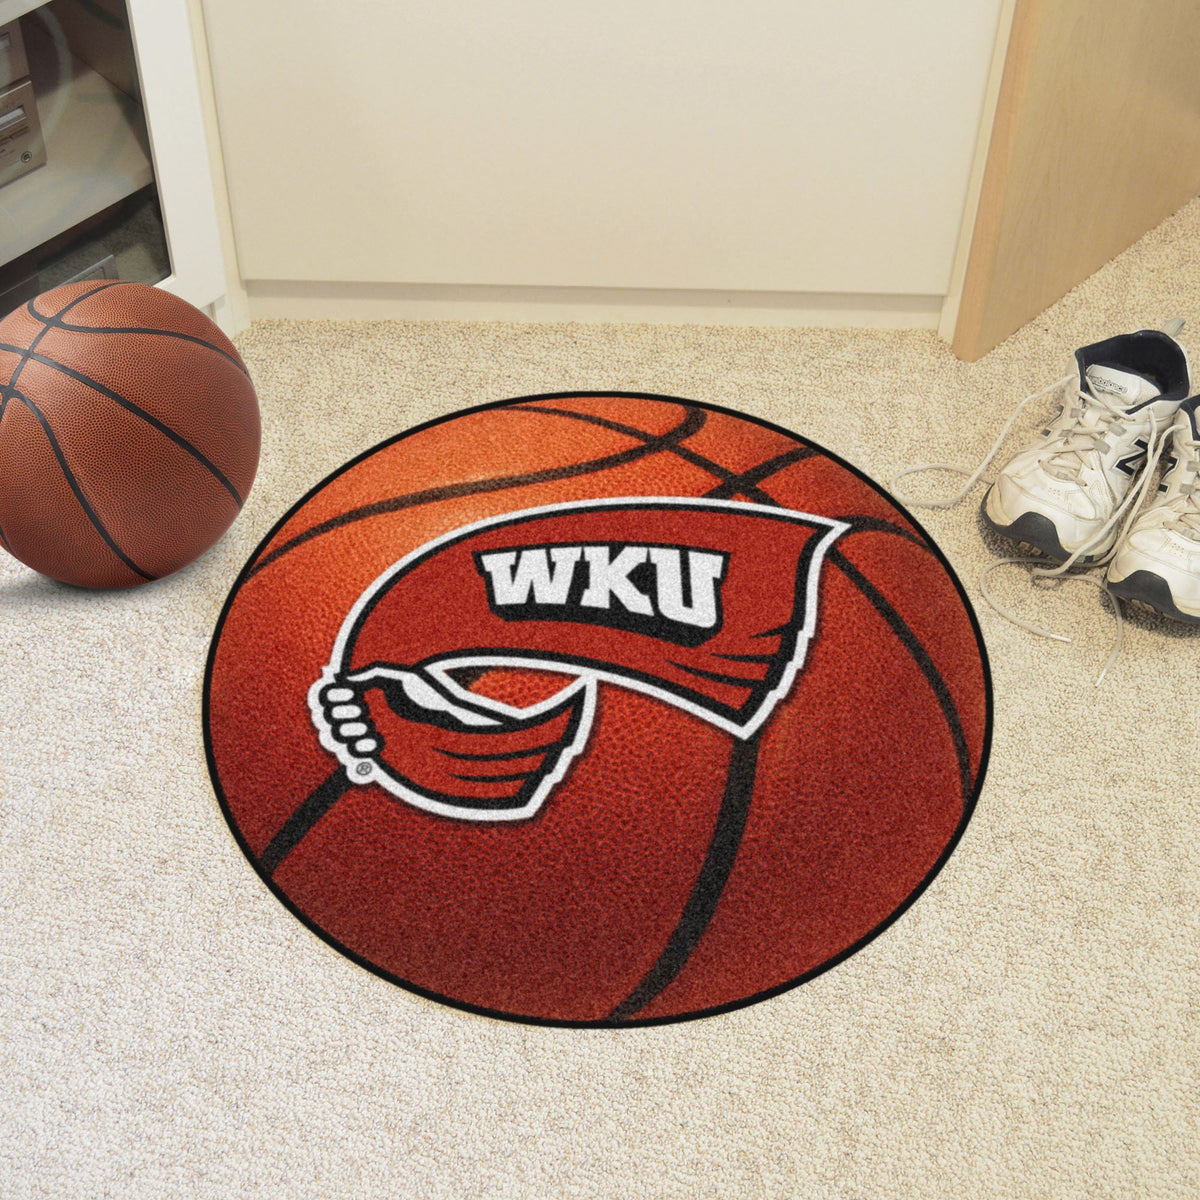 Collegiate - Basketball Mat: T - Z Collegiate Mats, Rectangular Mats, Basketball Mat, Collegiate, Home Fan Mats Western Kentucky